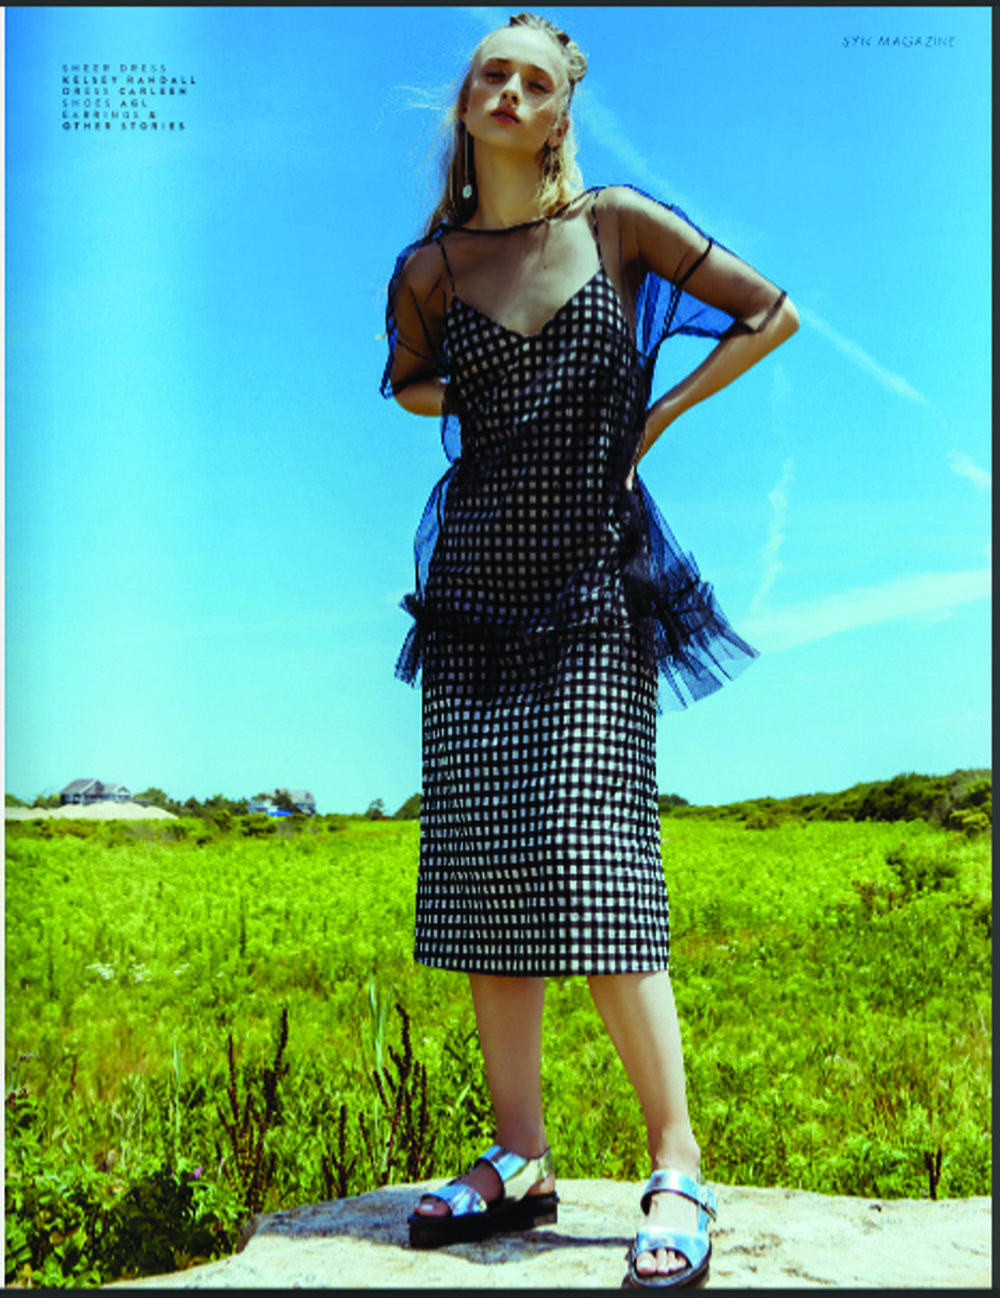 Copy of syn magazine kelsey randall black tulle babydoll dress sheer baby doll short sleeve ruffle gem gingham check